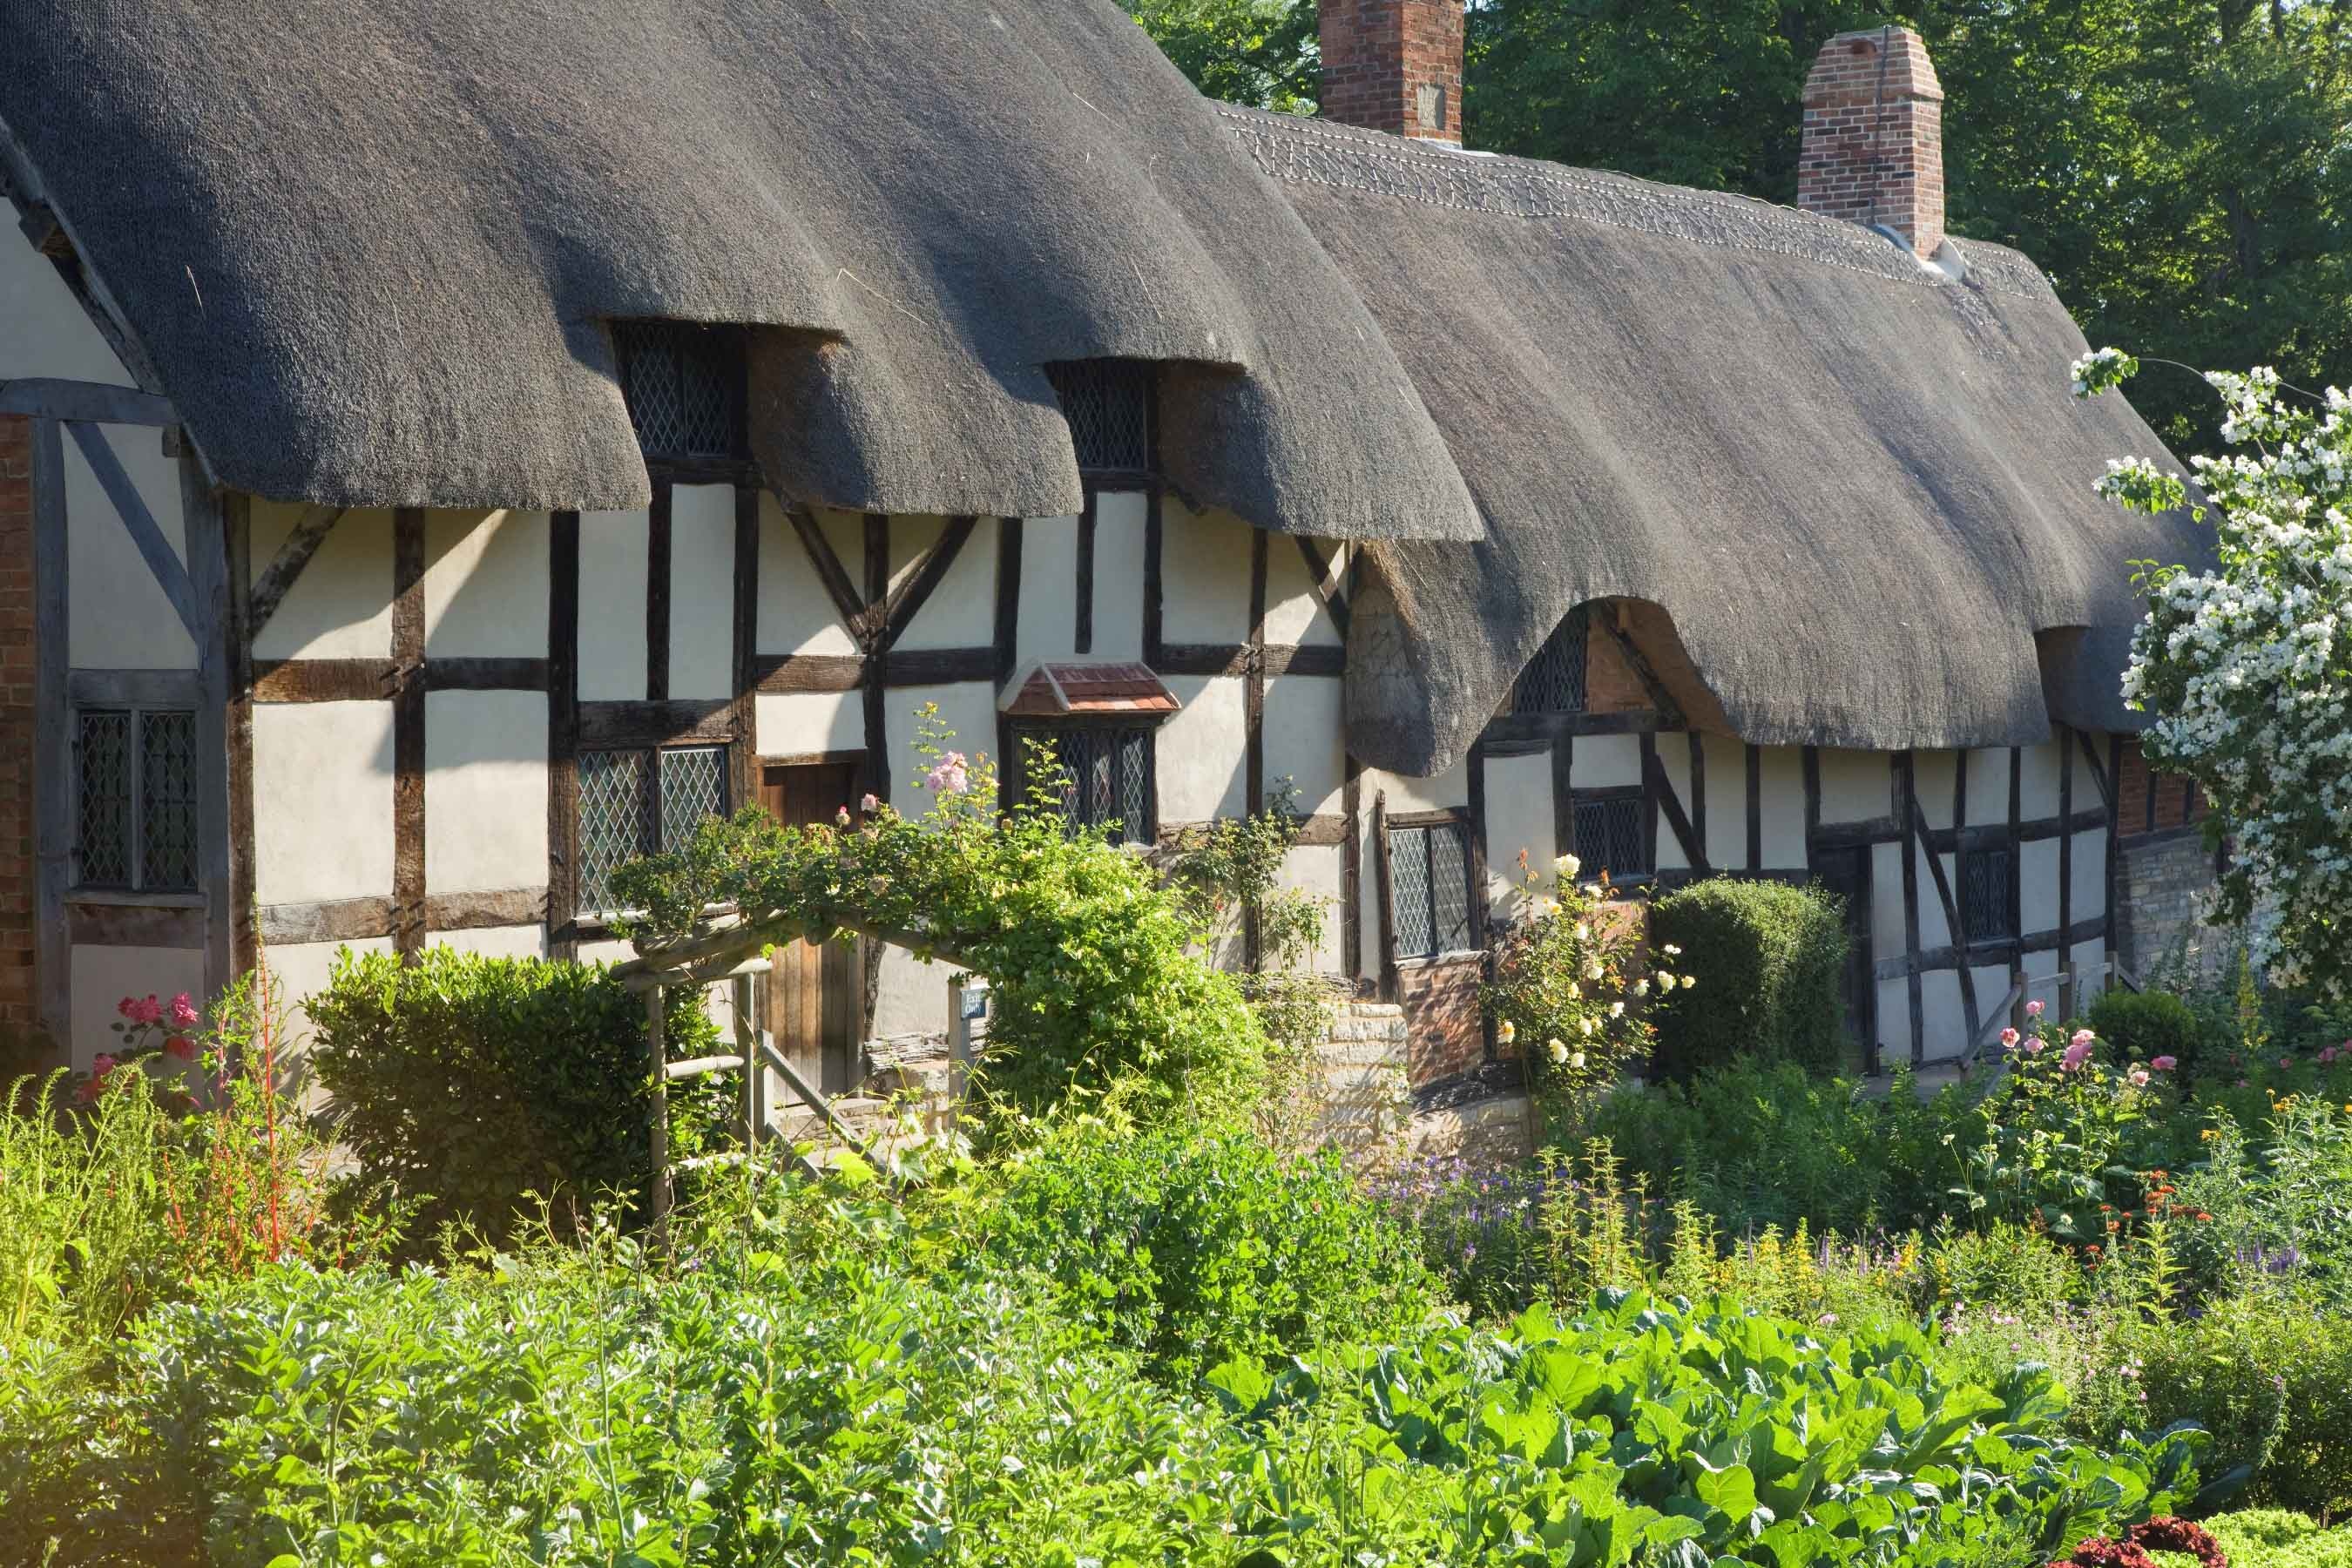 Anne Hathaway's olde-worlde thatched cottage in Stratford-upon-Avon